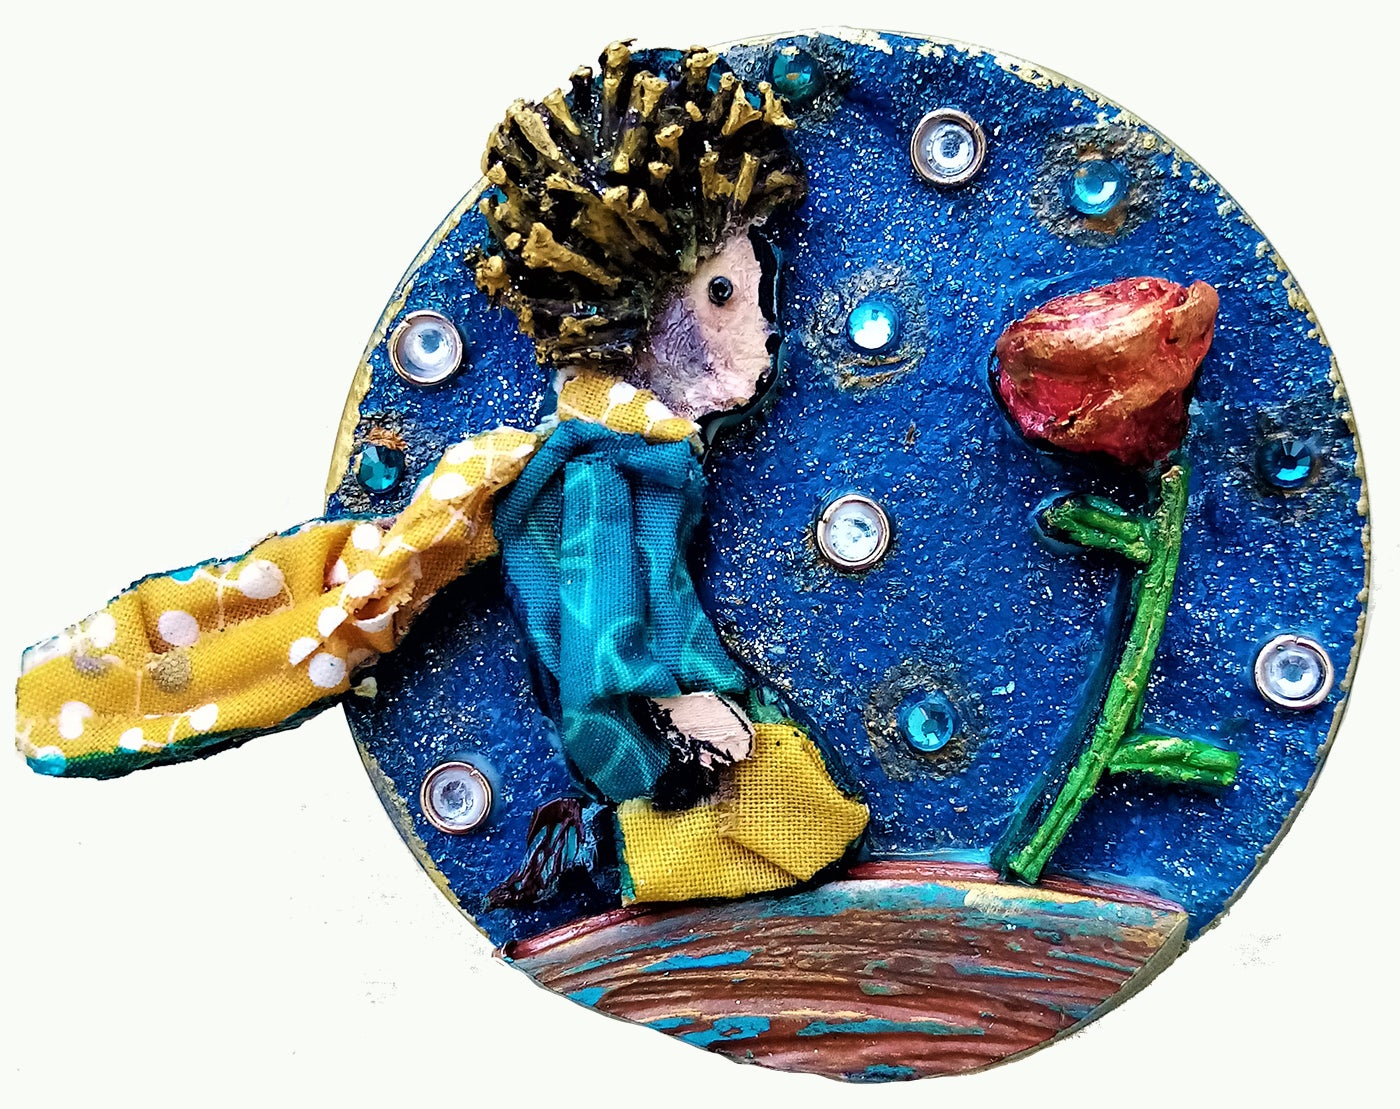 Image of Il piccolo principe e la rosa/Little Prince and the rose